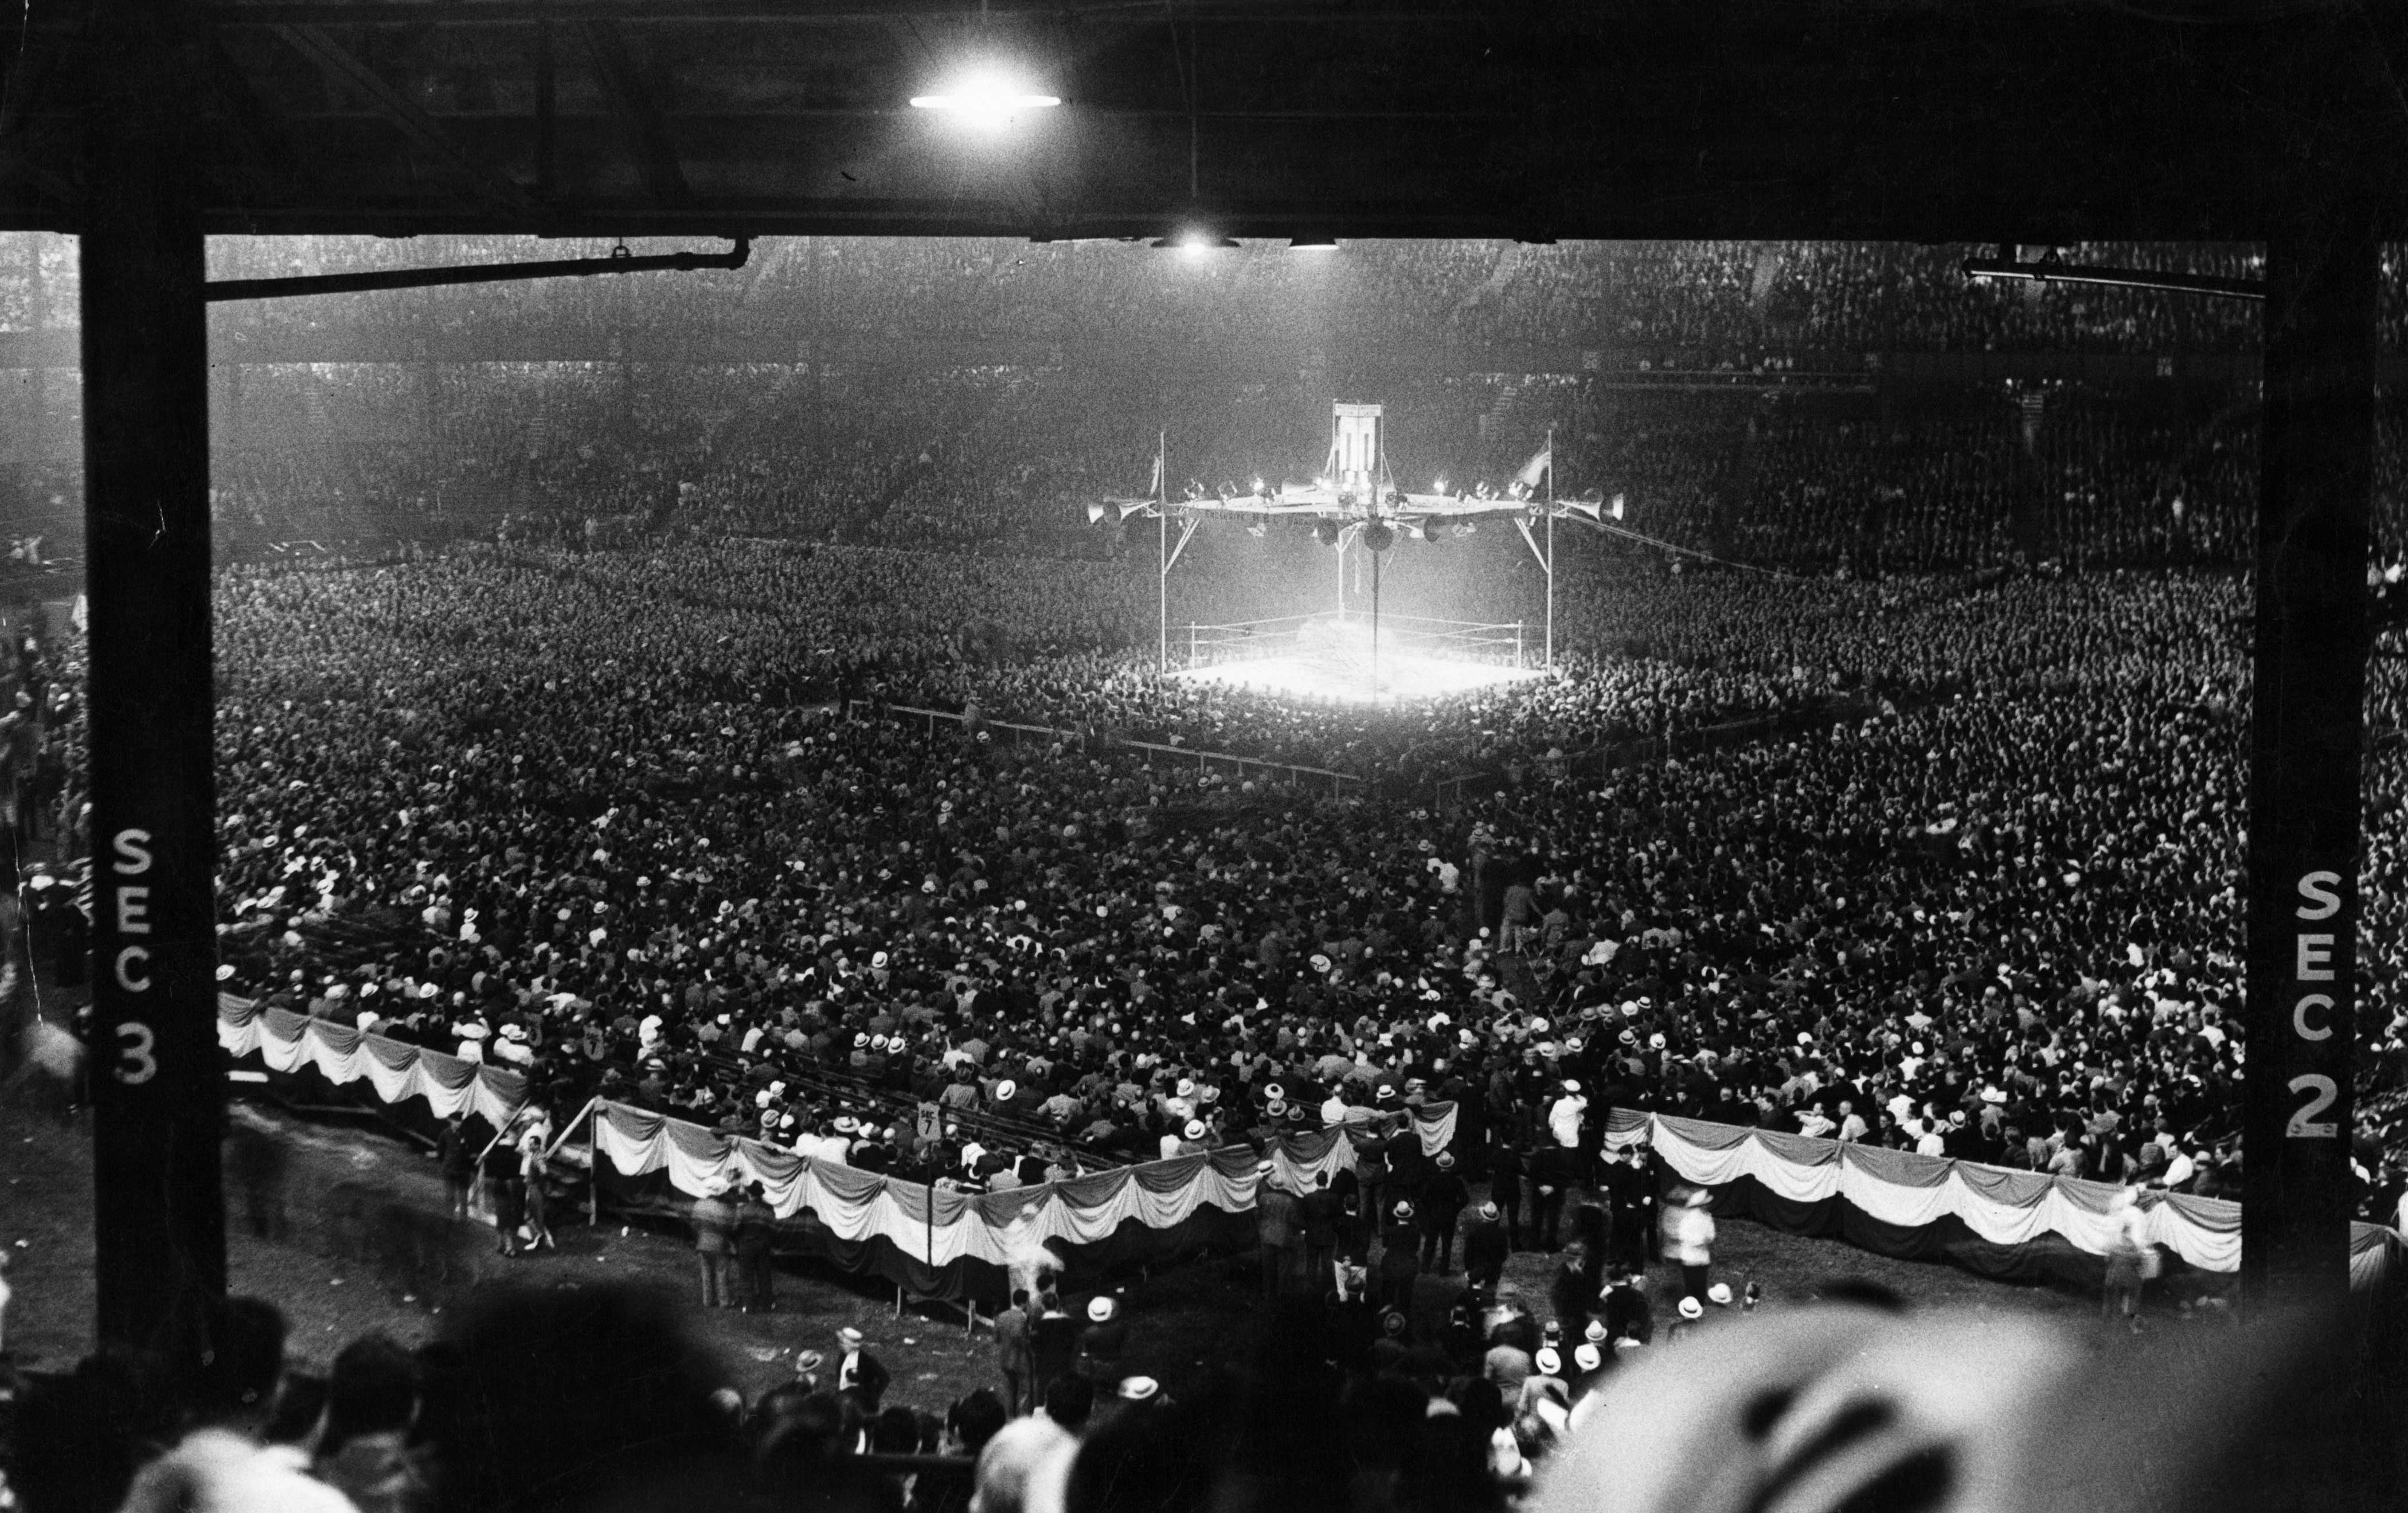 3862dccd91 A general view of the fight between Joe Louis and Max Schmeling at Yankee  Stadium in Bronx, New York, June 22, 1938. Louis won by a KO.